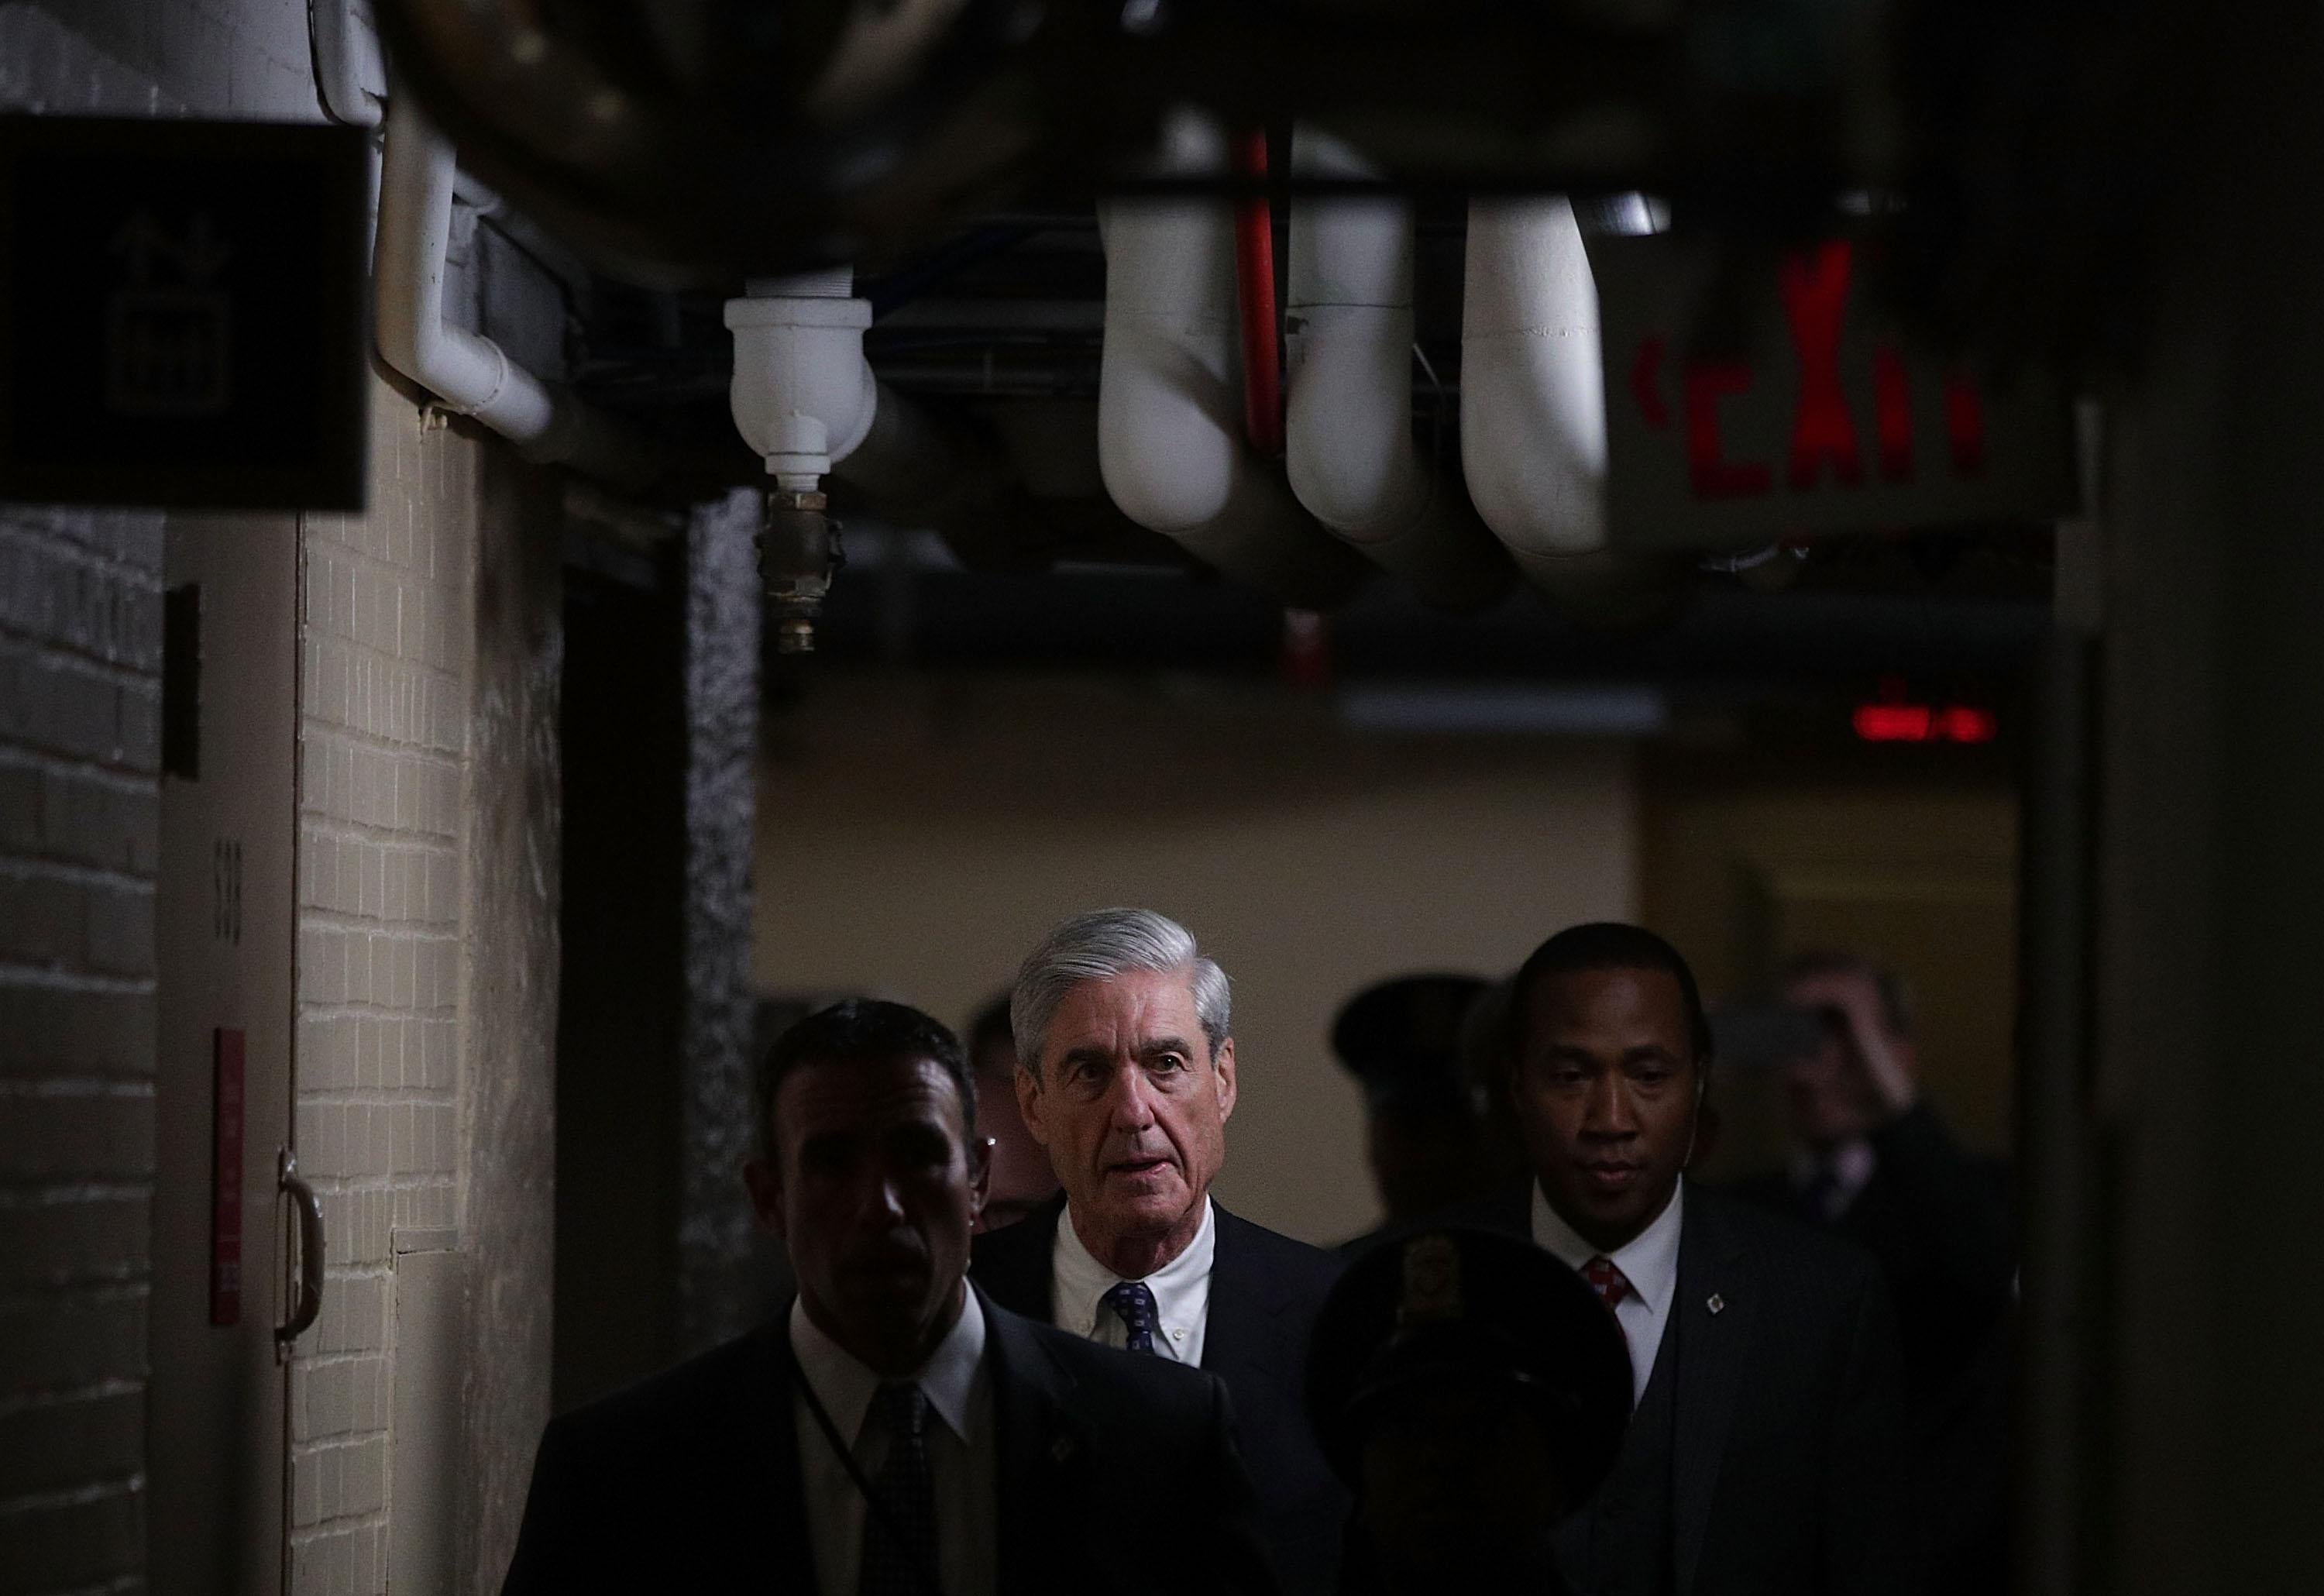 Special counsel Robert Mueller leaves after a closed meeting with members of the Senate Judiciary Committee June 21, 2017 at the Capitol in Washington, DC.